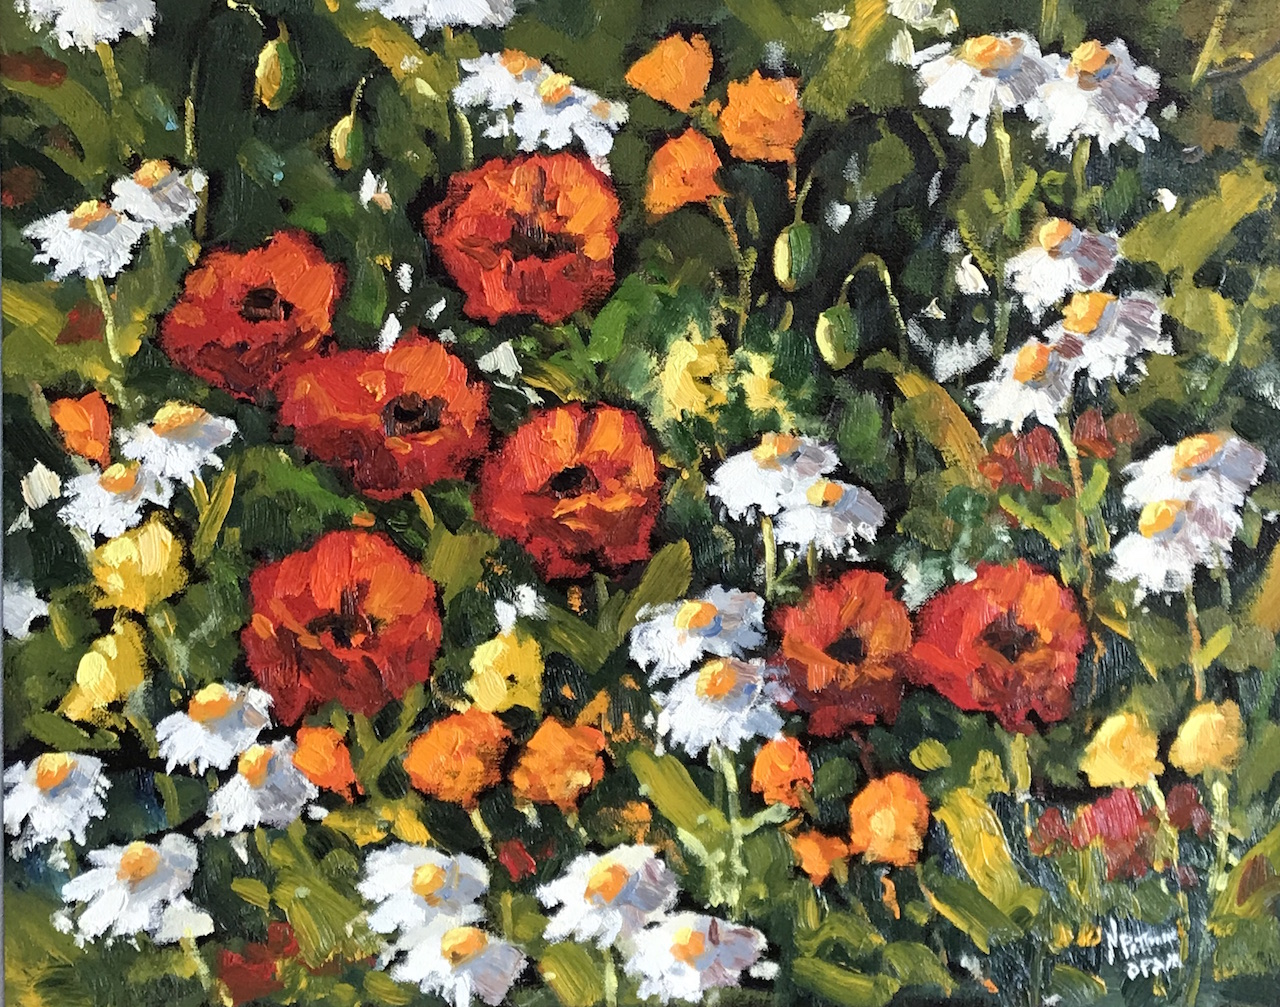 Neil Patterson Daisies and Poppies